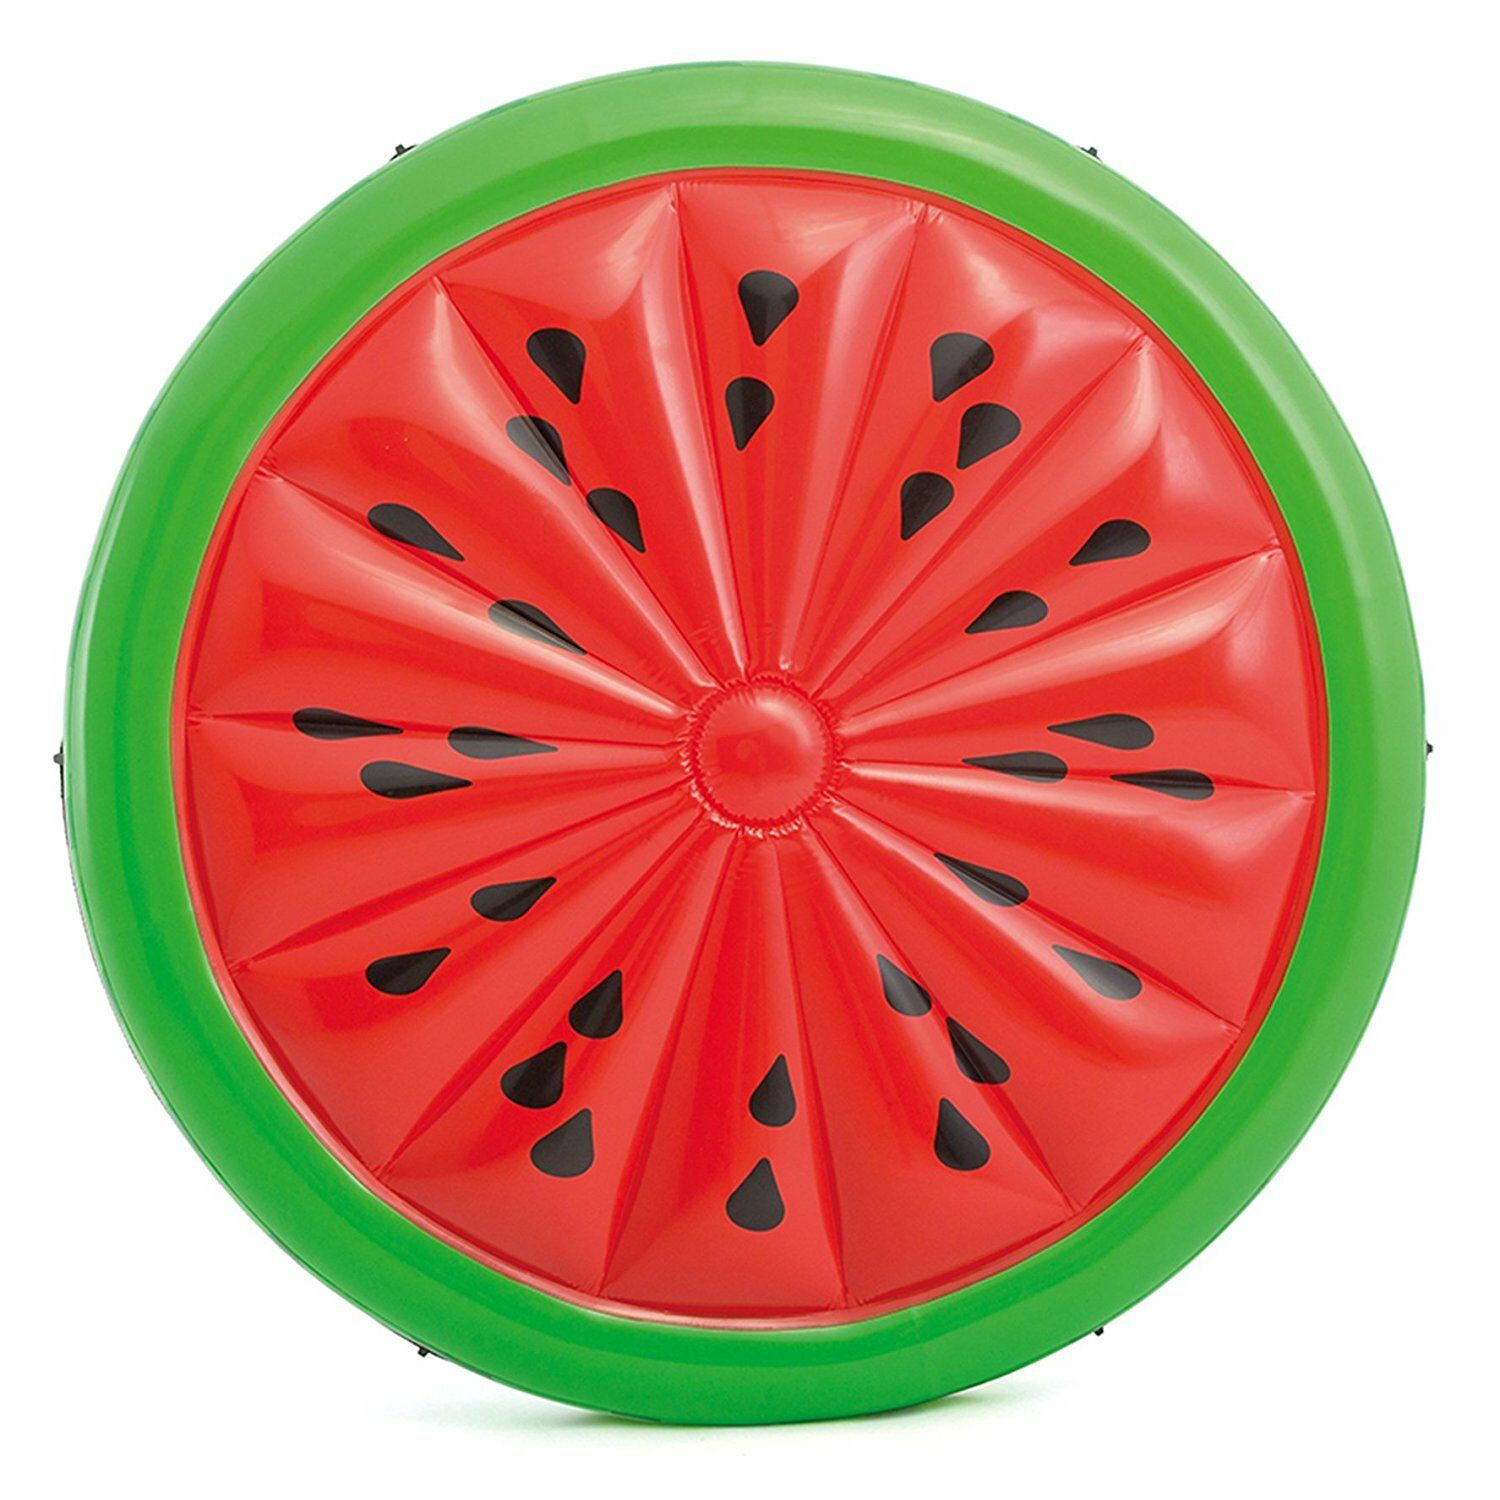 INTEX-Watermelon Island-56283-72 x9 -Water & Pool Inflatable Lounge-NEW